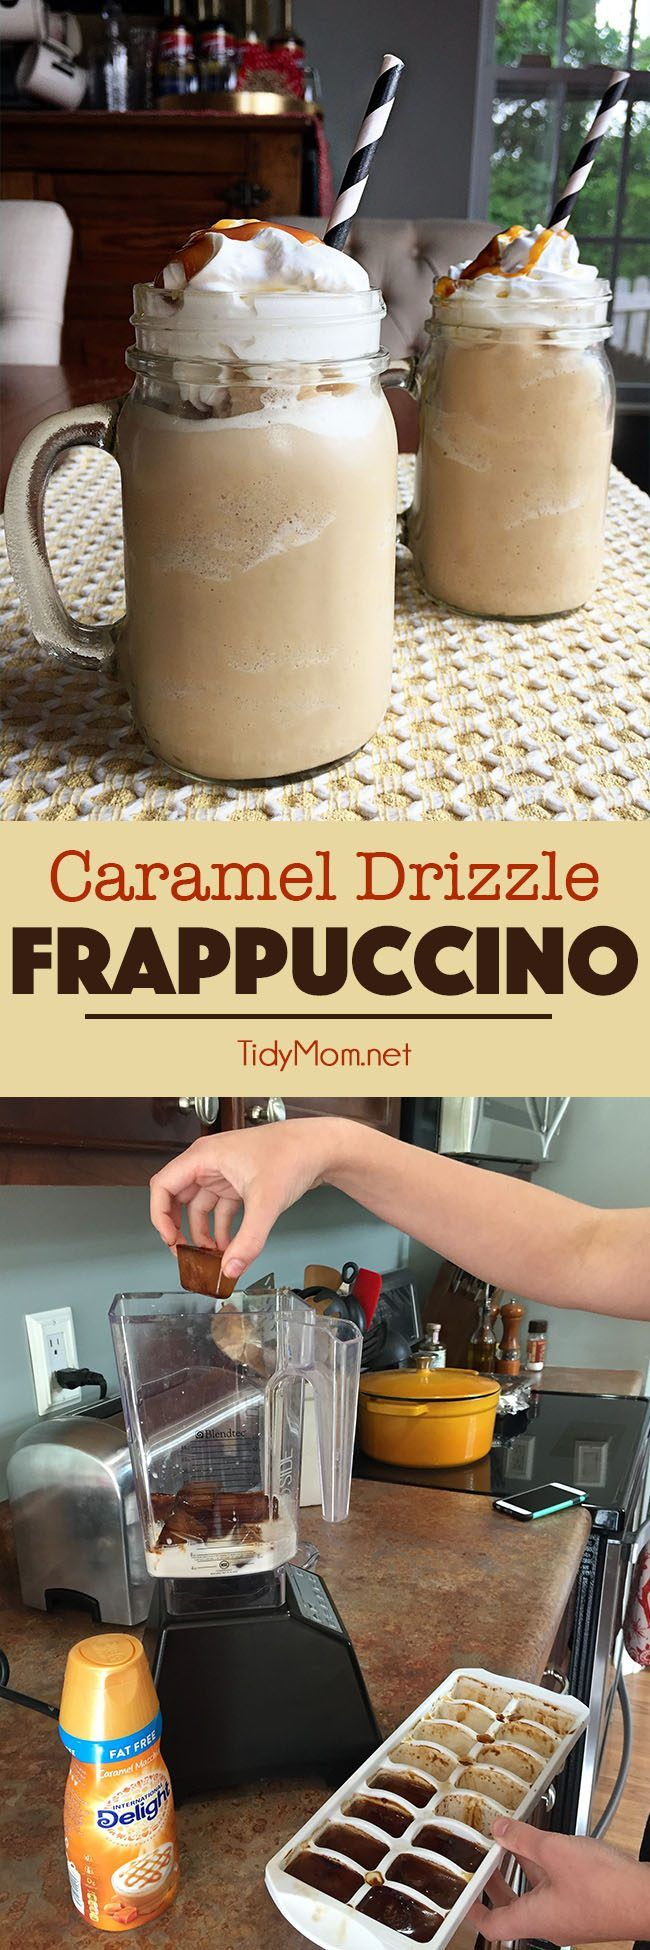 COFFE ICE CUBES are the secret to making a delicious FRAPPUCCINO at home! Homemade Caramel Drizzle Fappuccino is so easy to make at home and much cheaper than hitting up the coffee shops! get the recipe and directions for this frappuccino at TidyMom.net